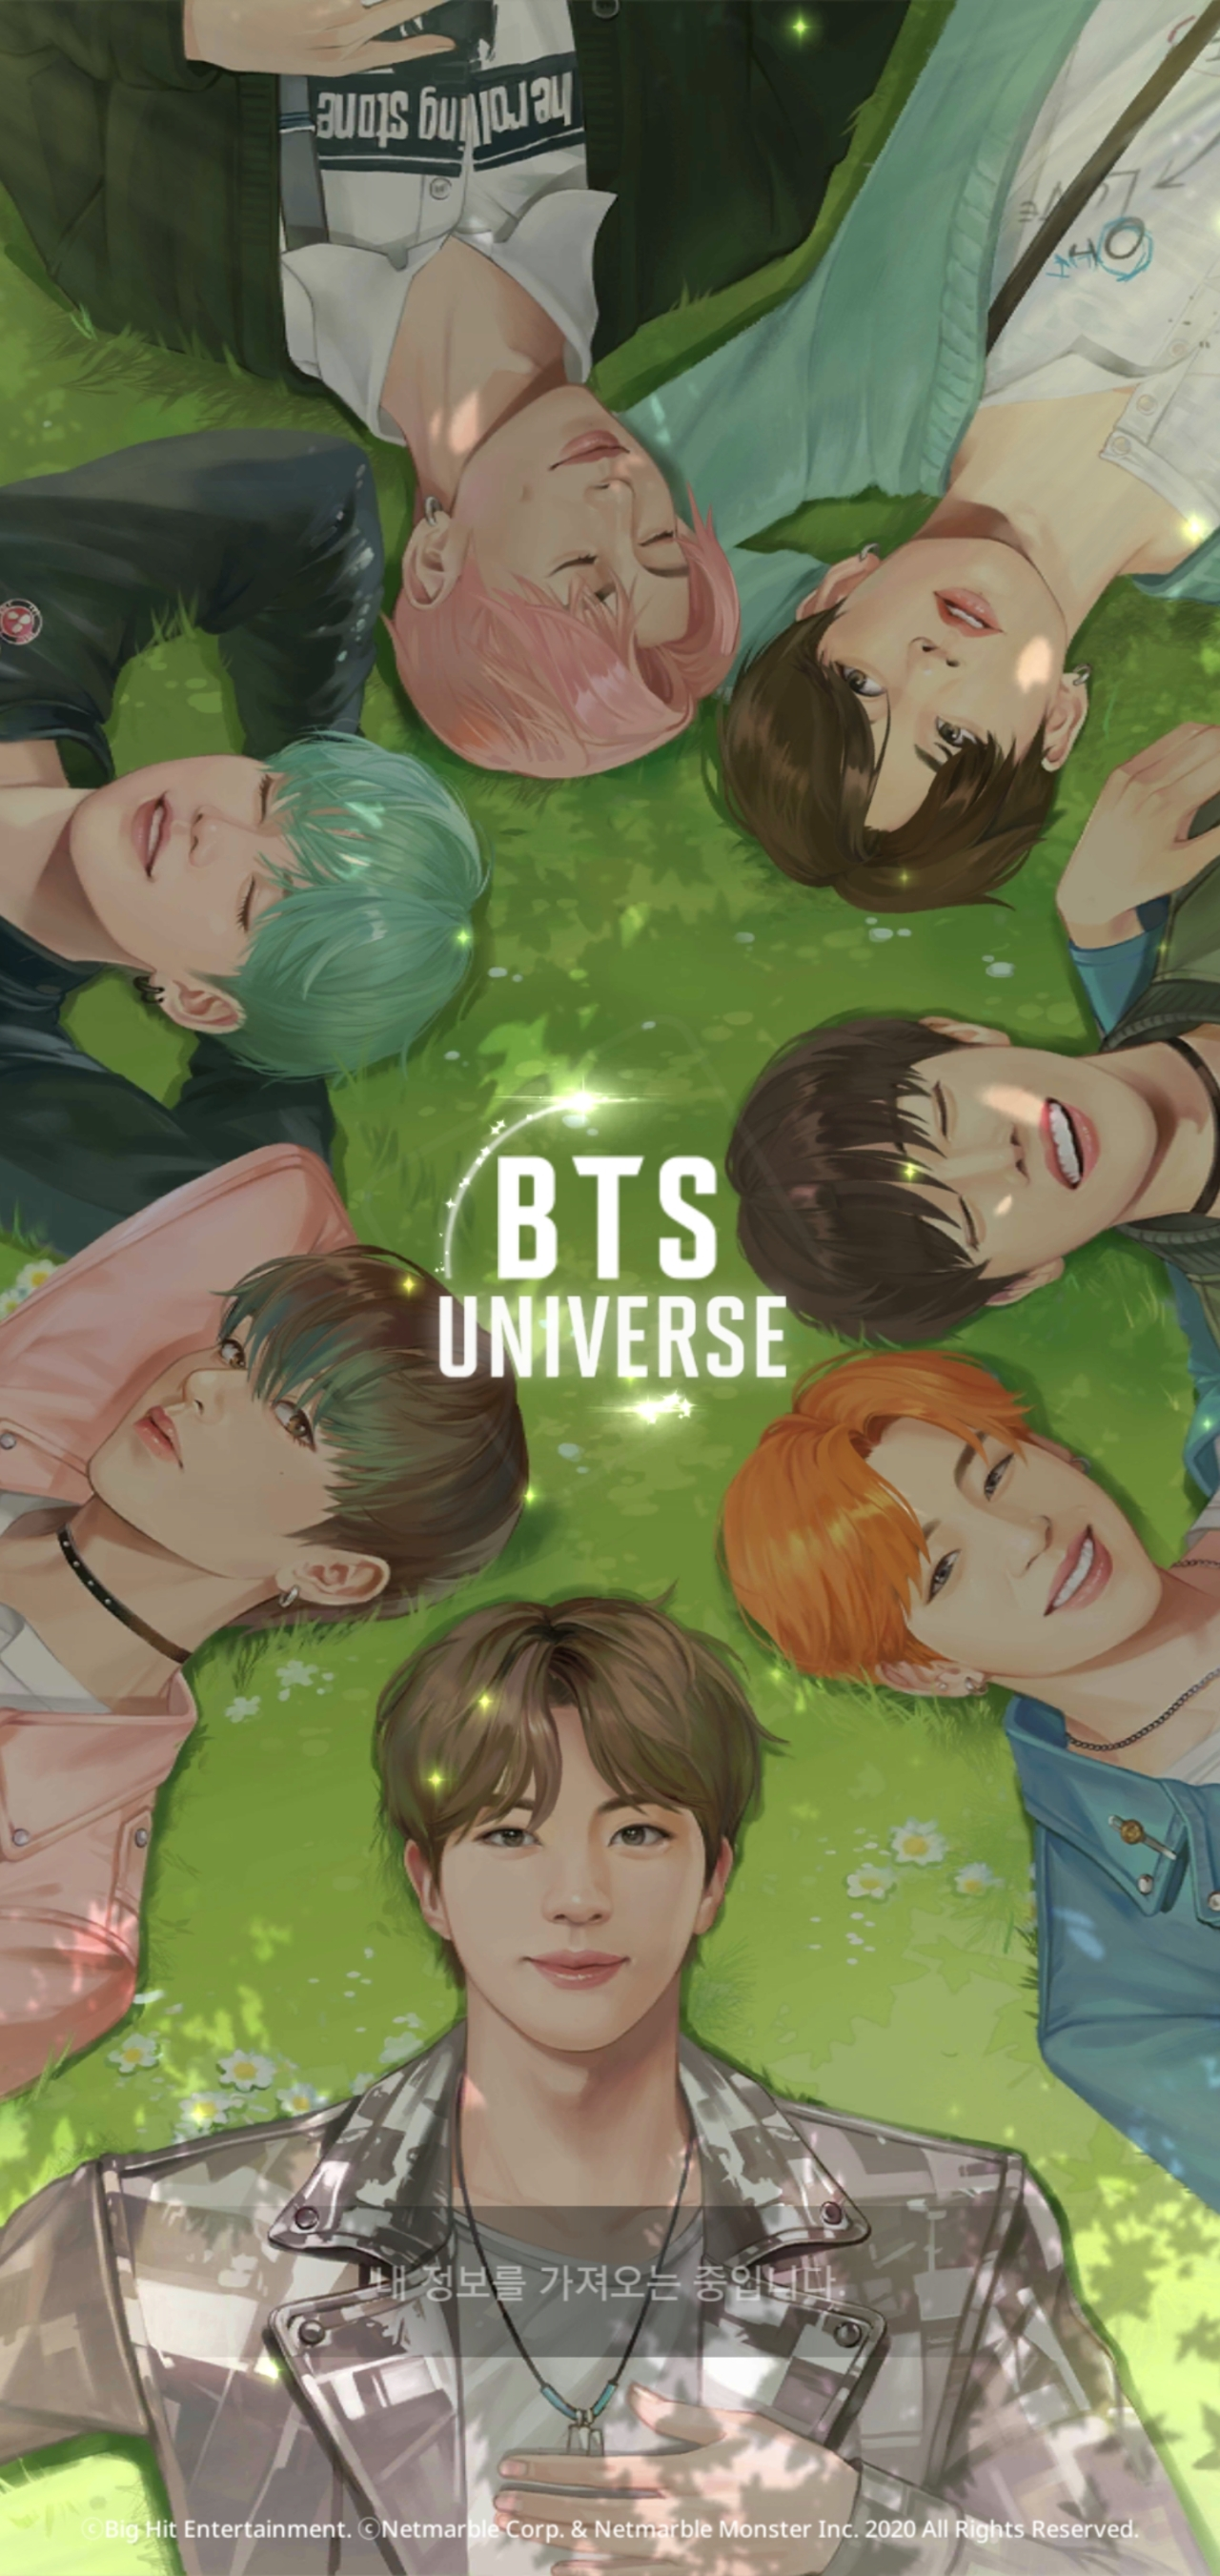 (BTS Universe Story screen capture)